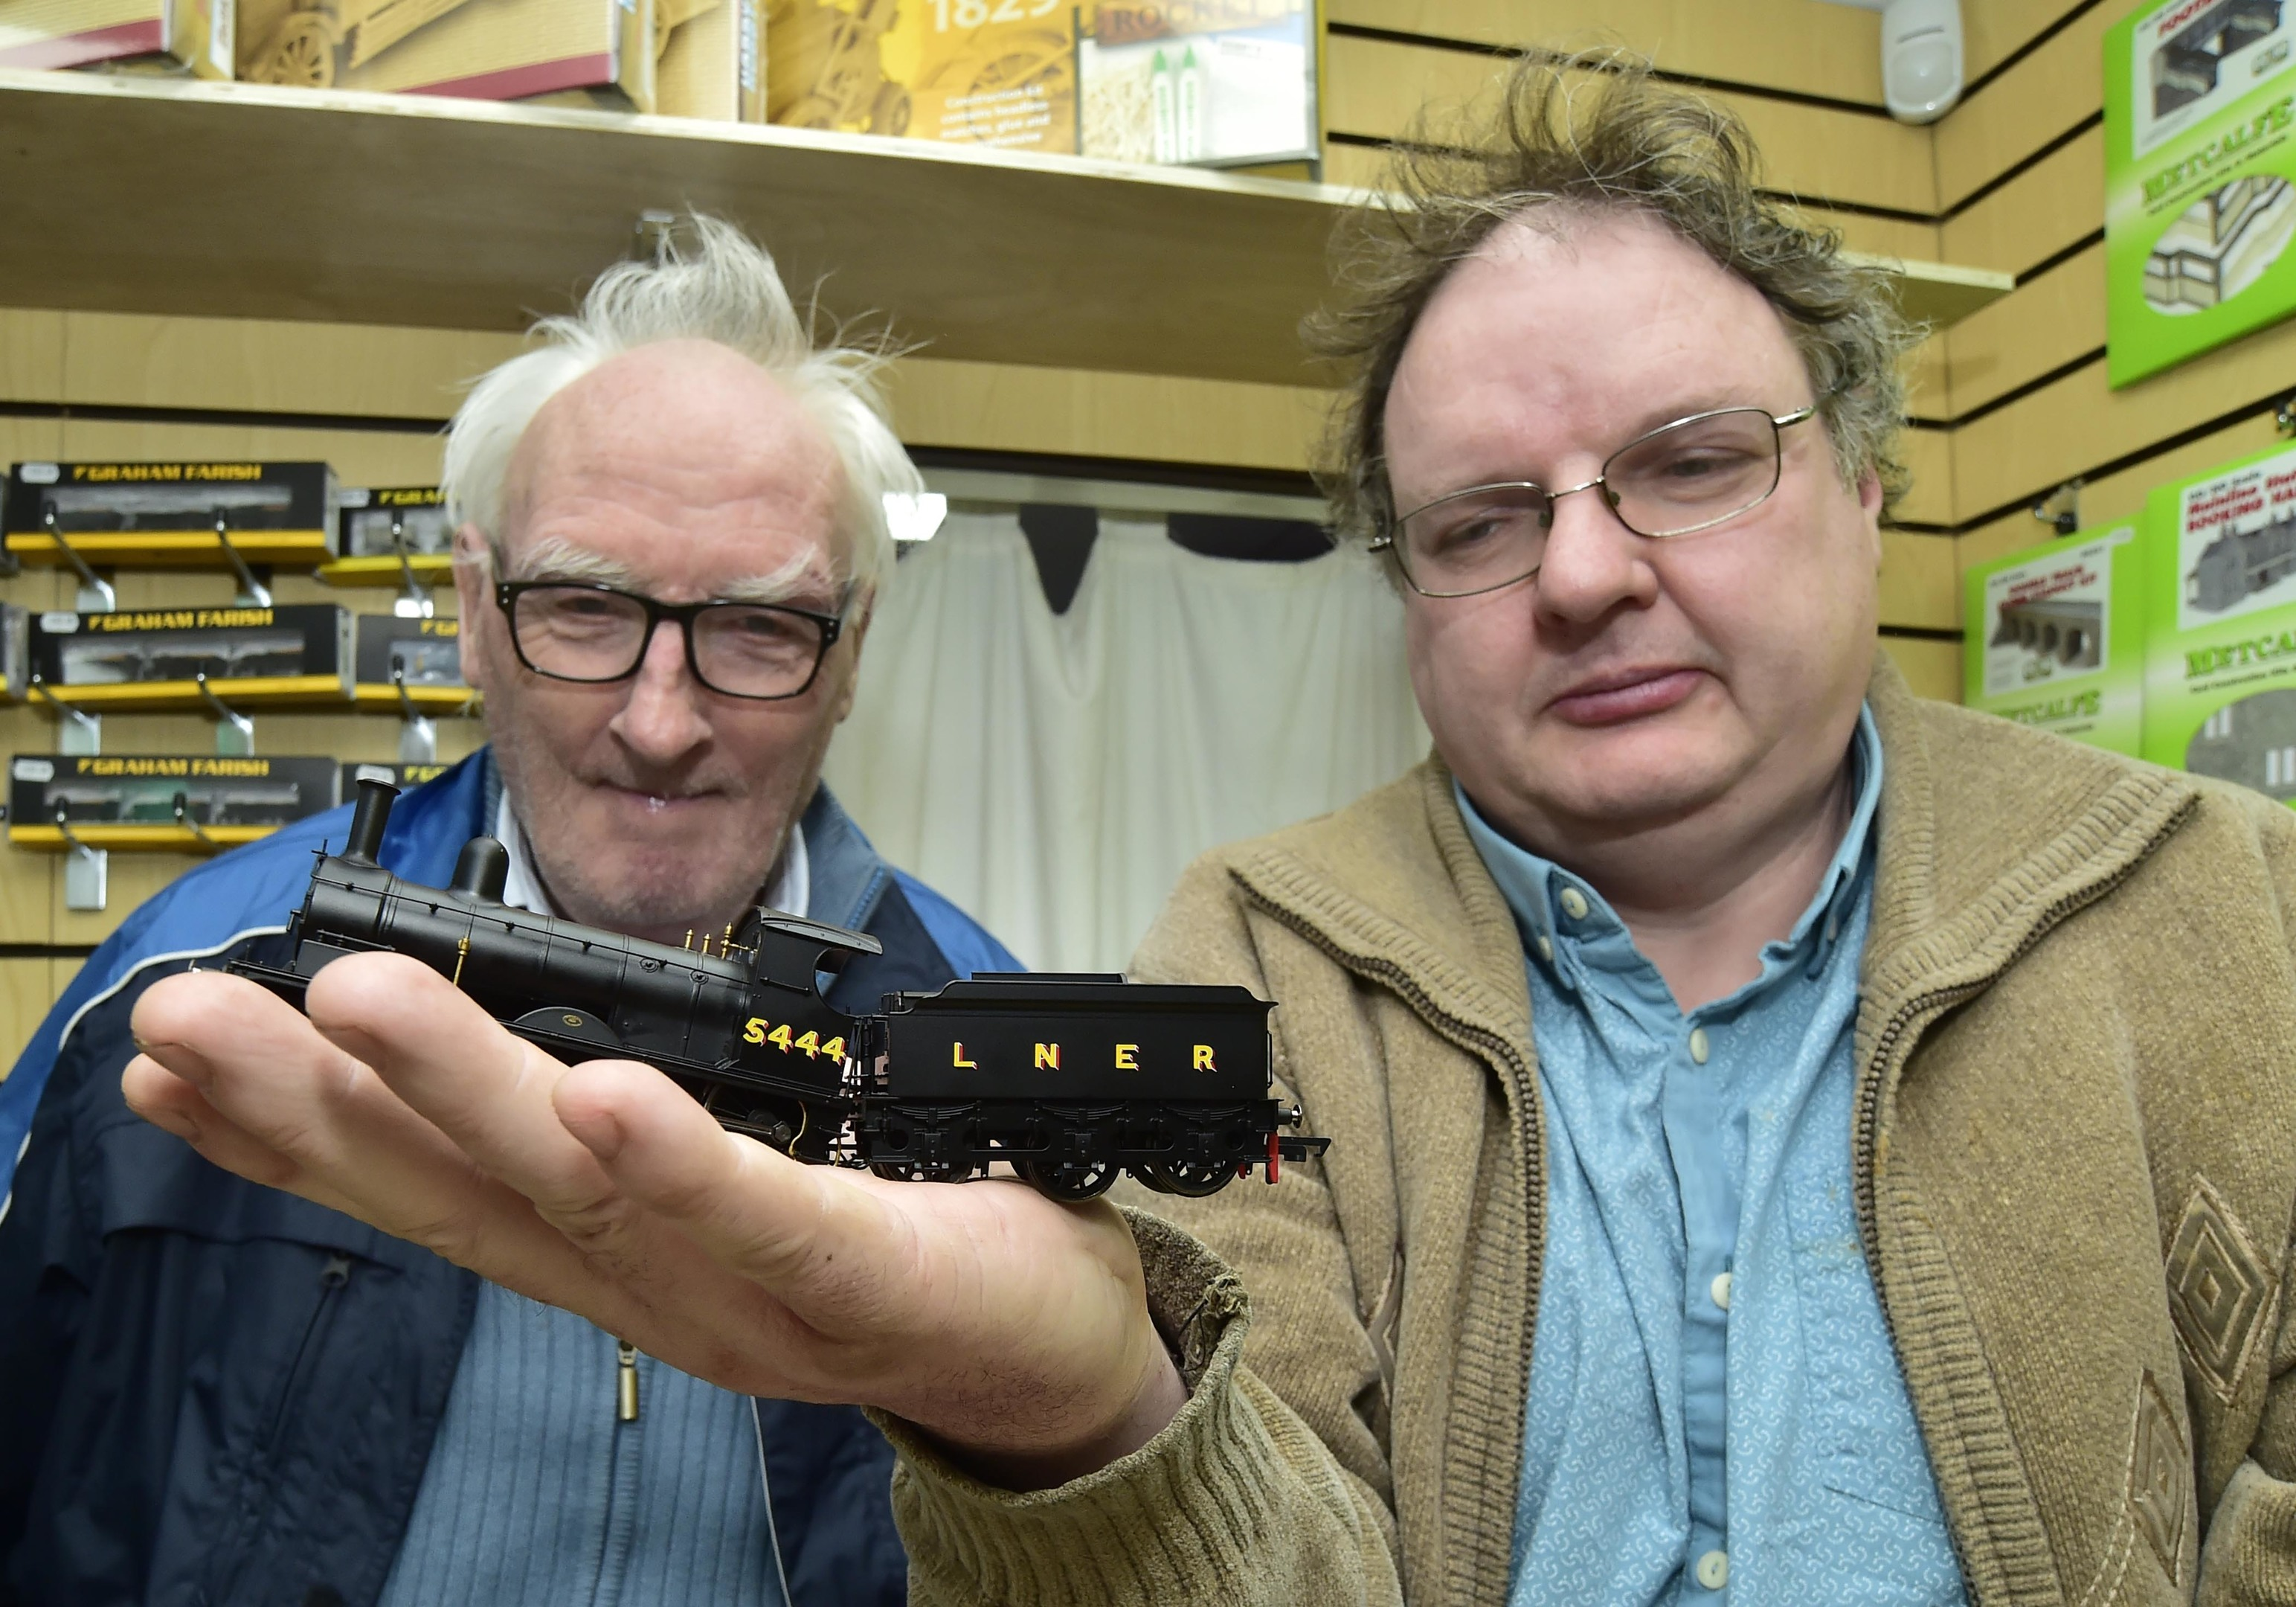 Bill Scatterty (L) and Gordon Kirtley of the North-east Heritage Railway with a model steam train.they are hoping to restore the real thing to the north-east.